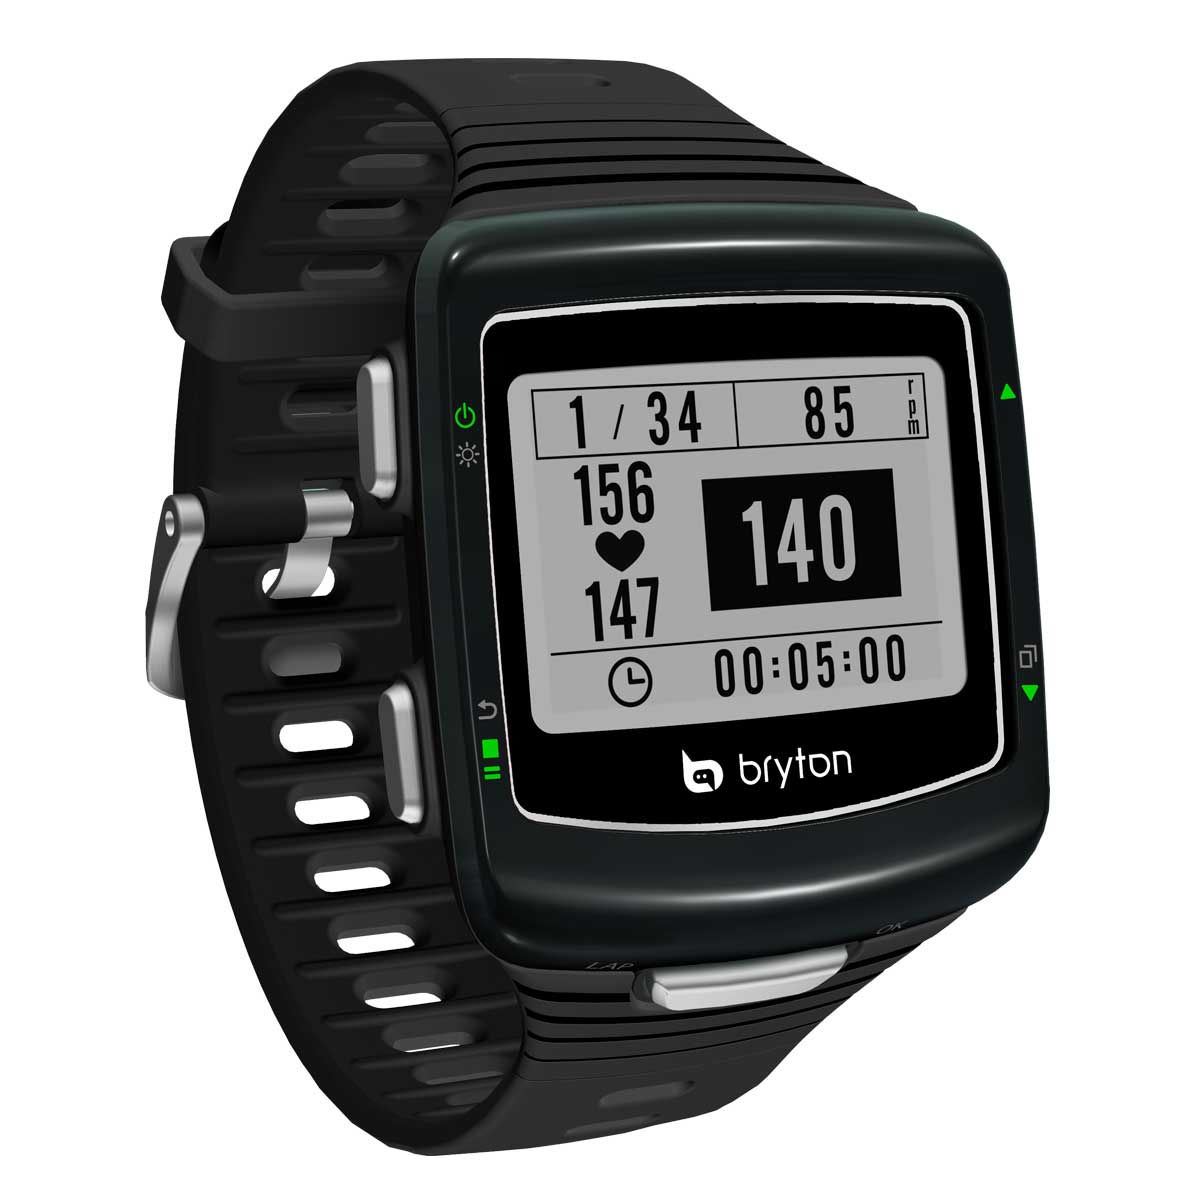 bryton cardio 60t triathlon sportuhr mit sensorset gps. Black Bedroom Furniture Sets. Home Design Ideas